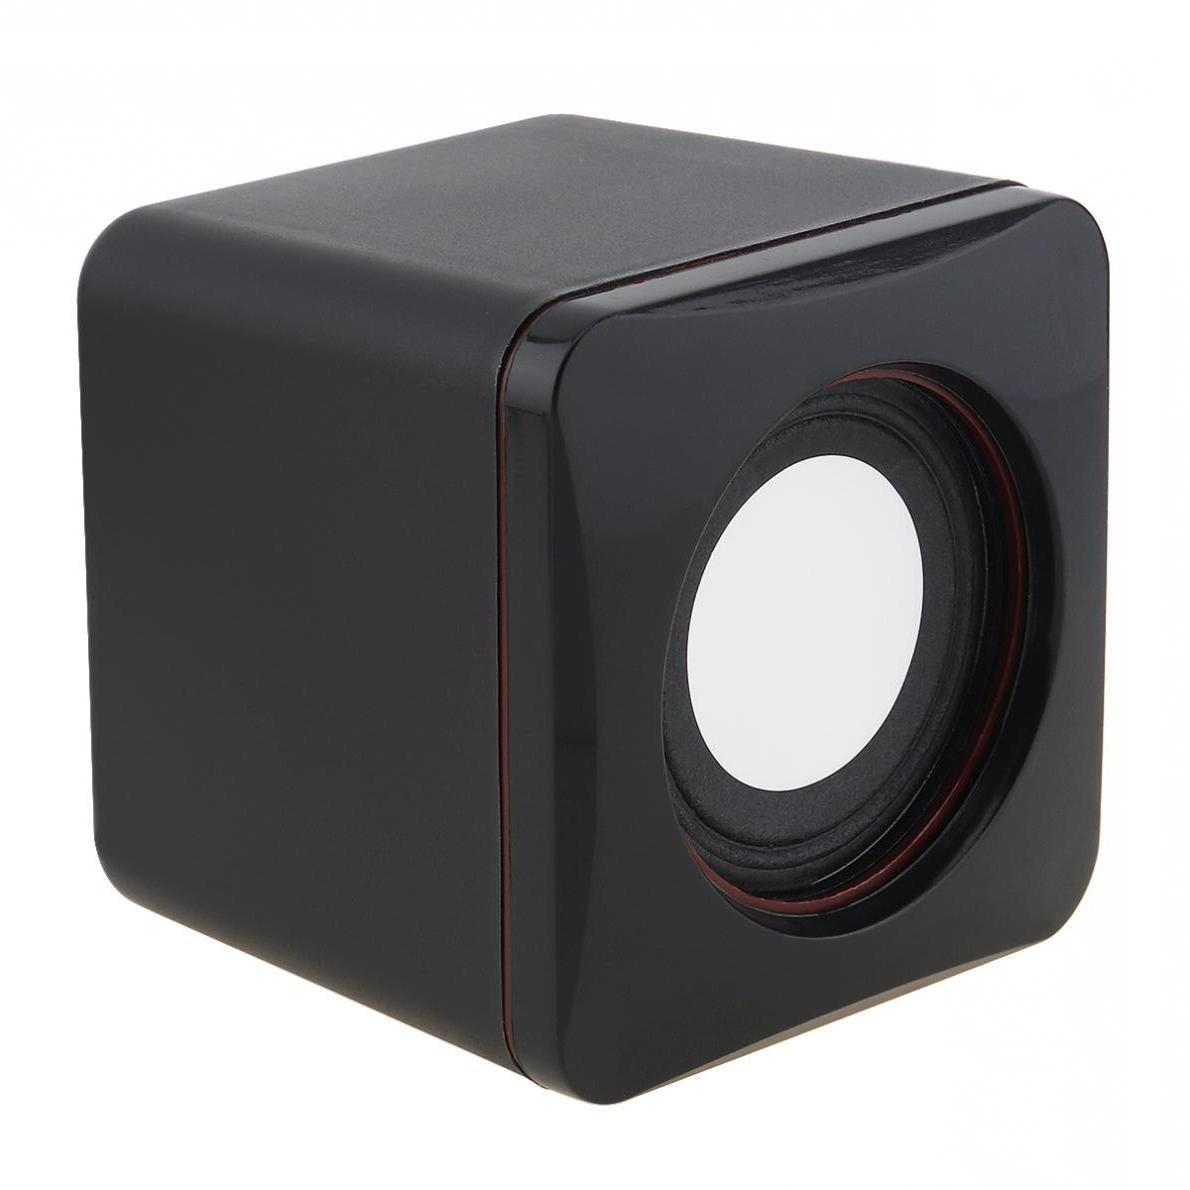 101Z 6W <font><b>Speaker</b></font> 2.0 <font><b>Speakers</b></font> with <font><b>Stereo</b></font> and Powered Smartphone